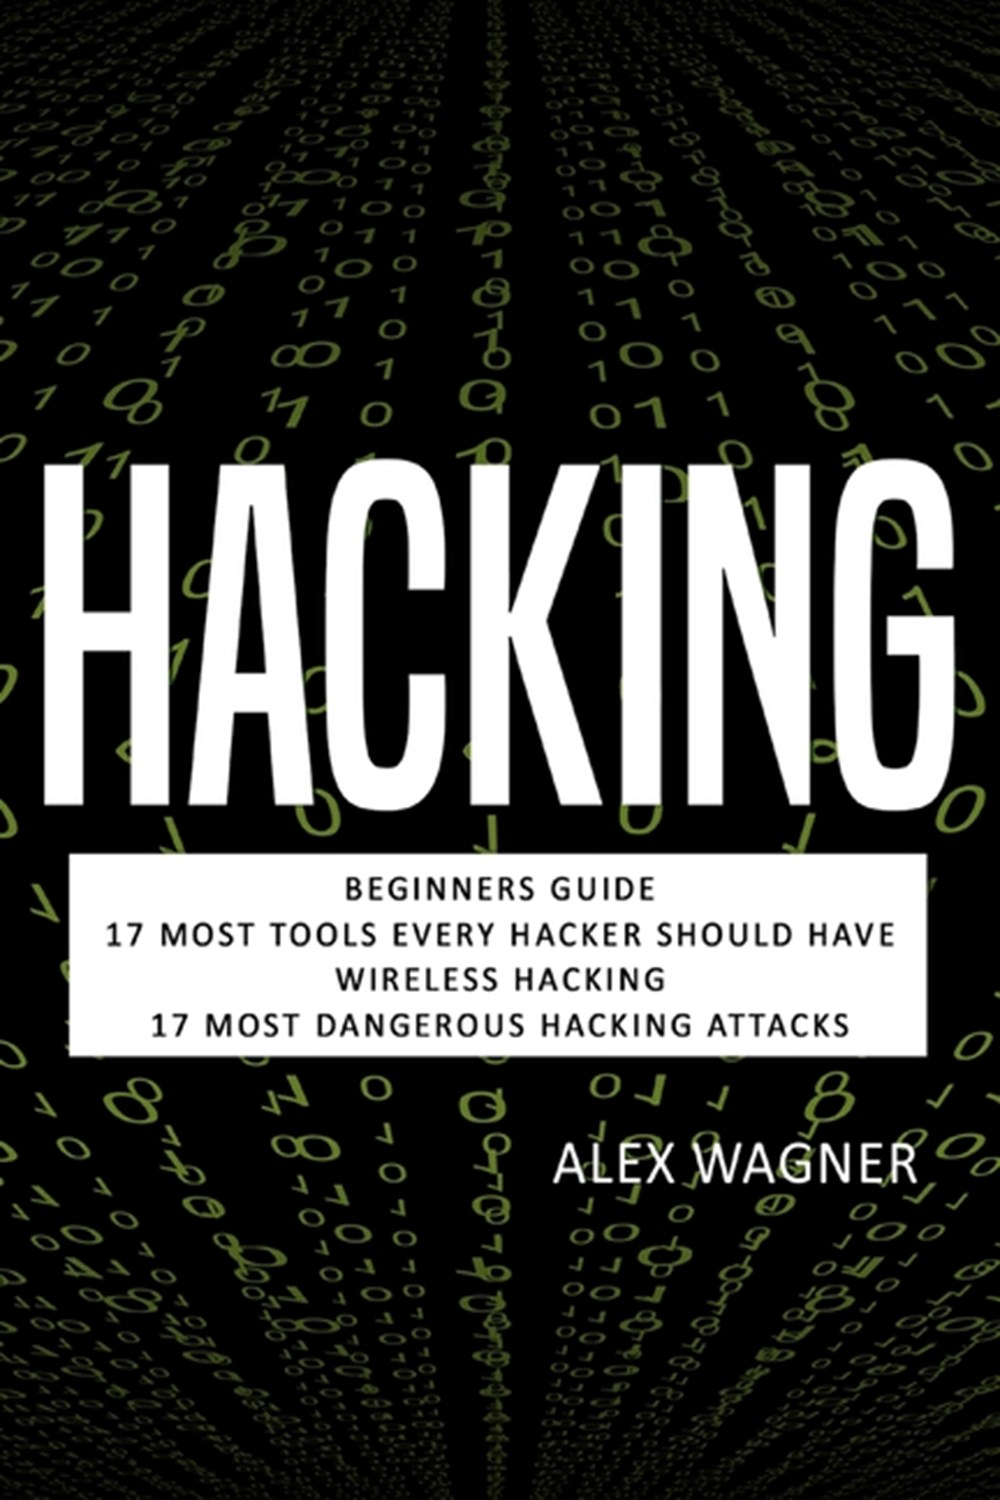 Hacking Beginners Guide, 17 Must Tools every Hacker should have, Wireless Hacking & 17 Most Dangerou